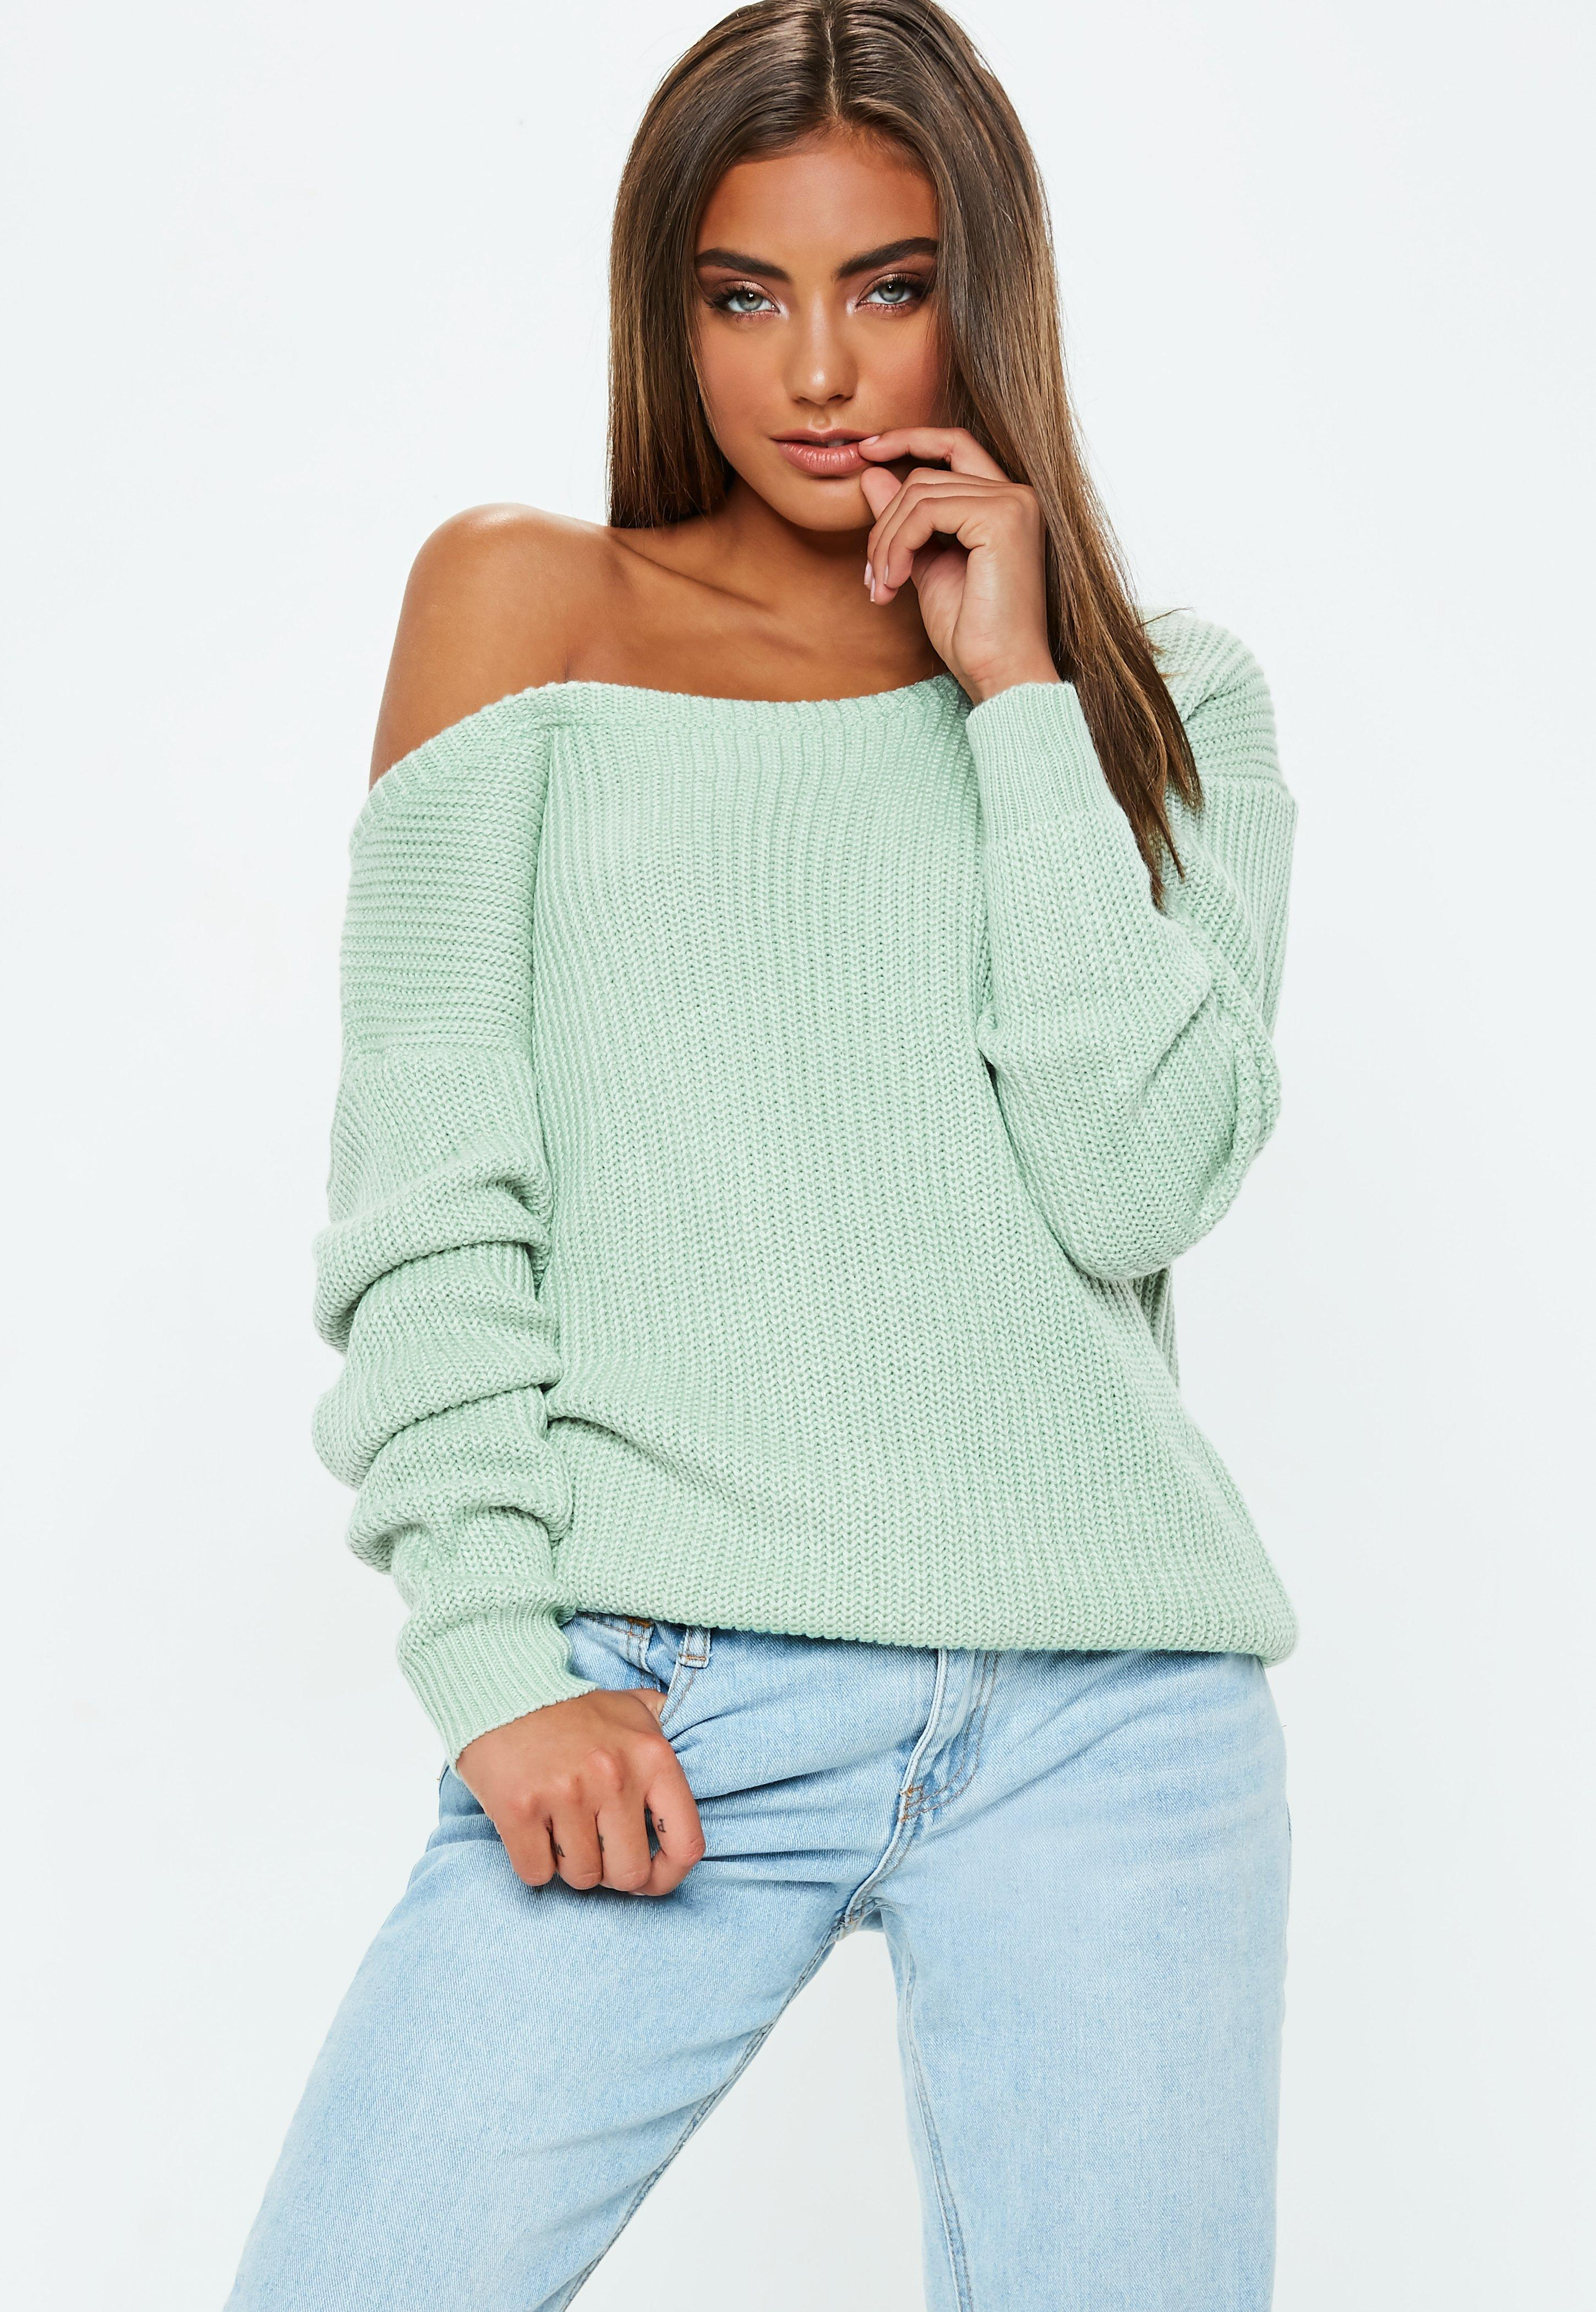 c0b92adf7 Lyst - Missguided Mint Green Off Shoulder Knitted Jumper in Green